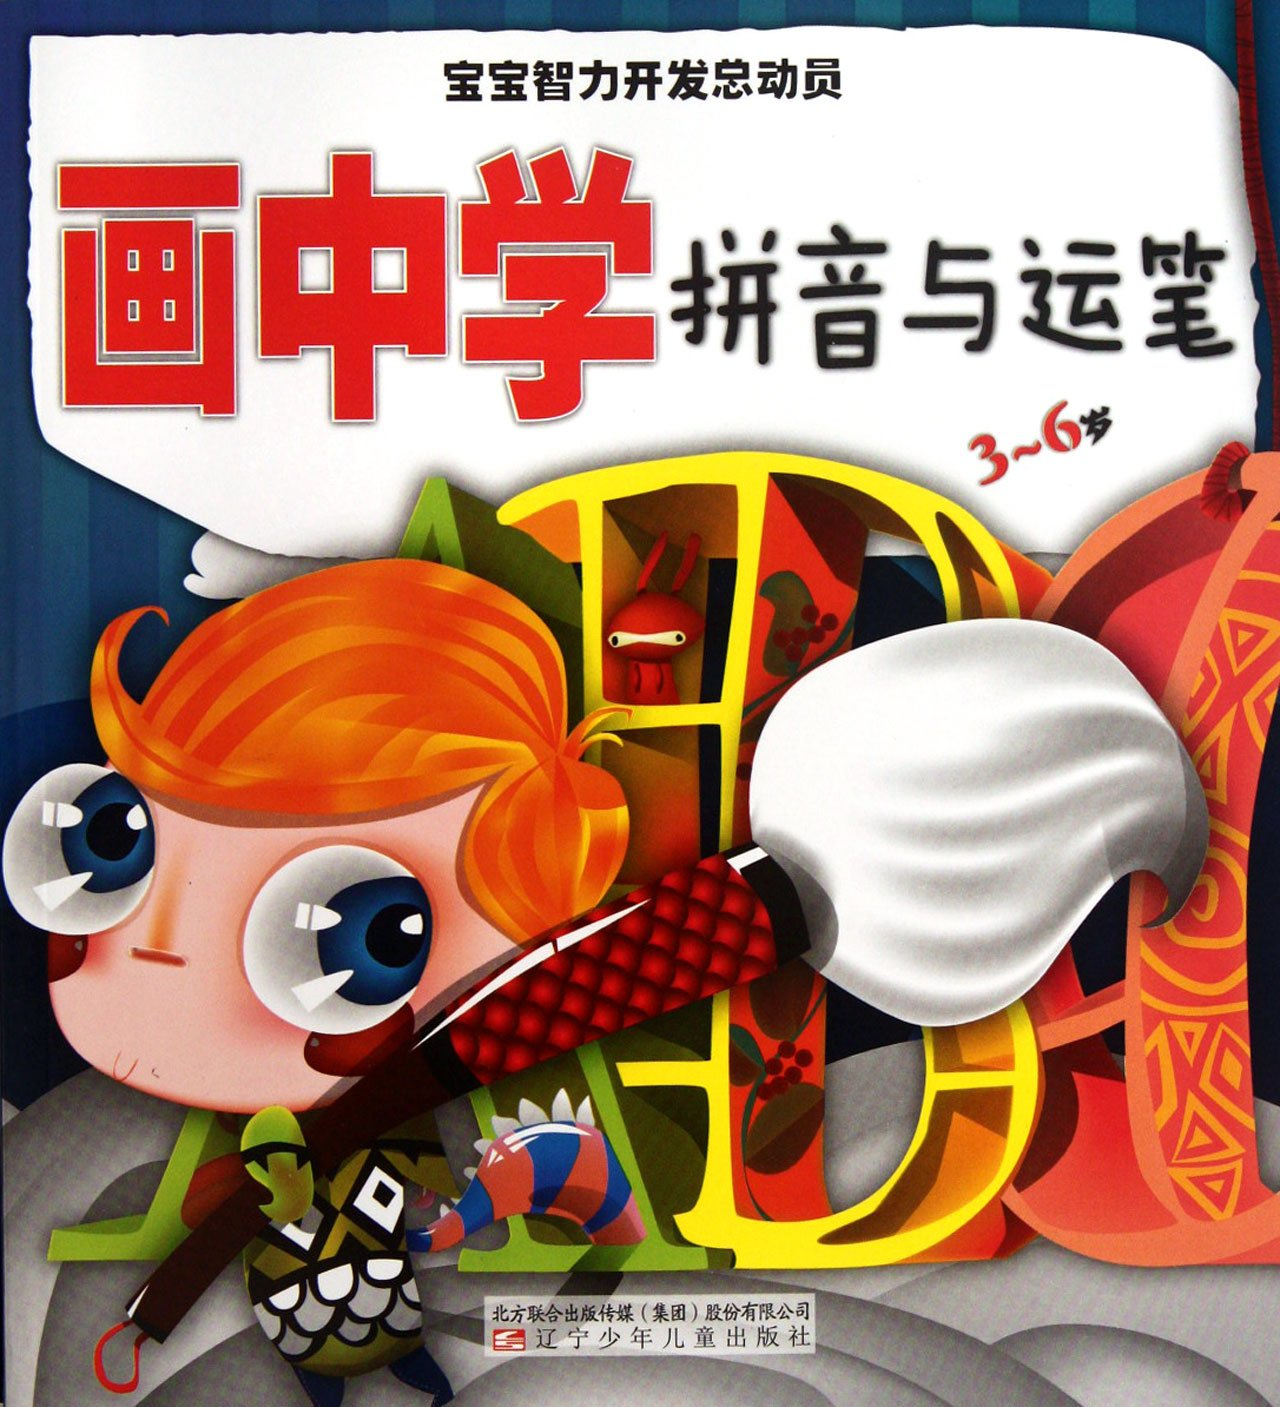 Download Learn Pinyin and Brush Handling in Pictures-Baby Intelligence Development- For 3 to 6 Years Children (Chinese Edition) pdf epub